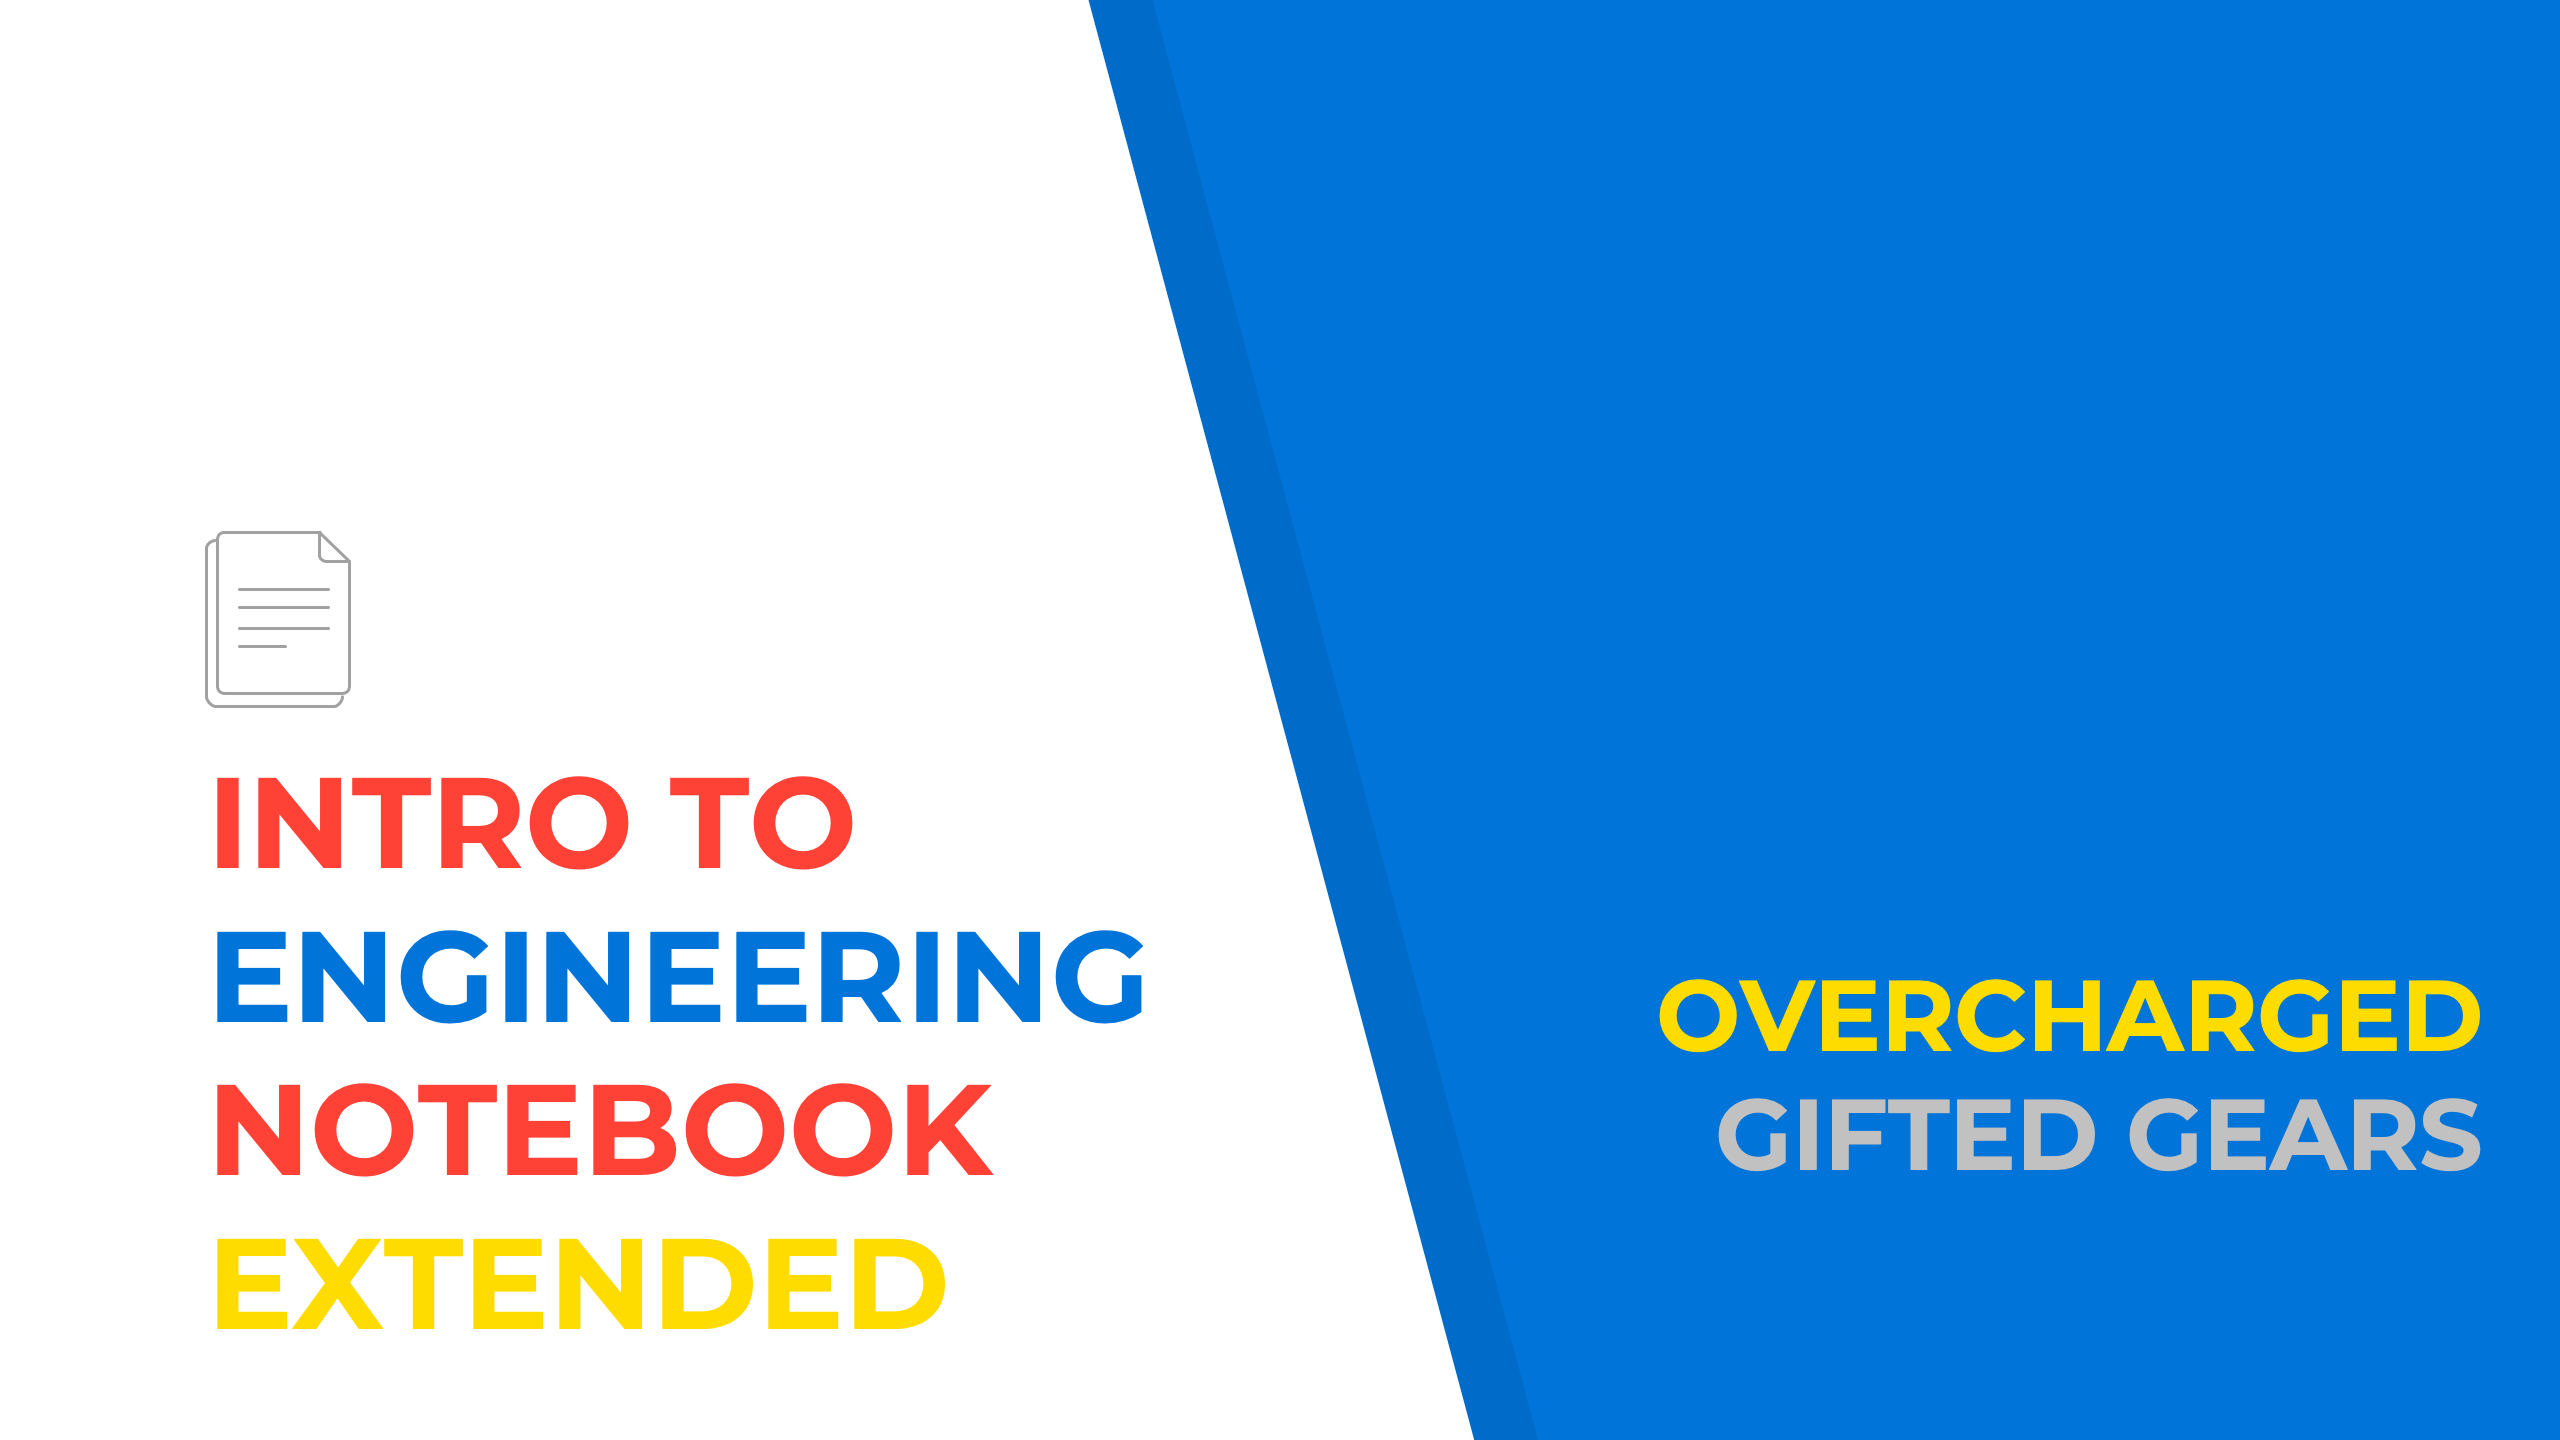 Intro to Engineering Notebook: Extended